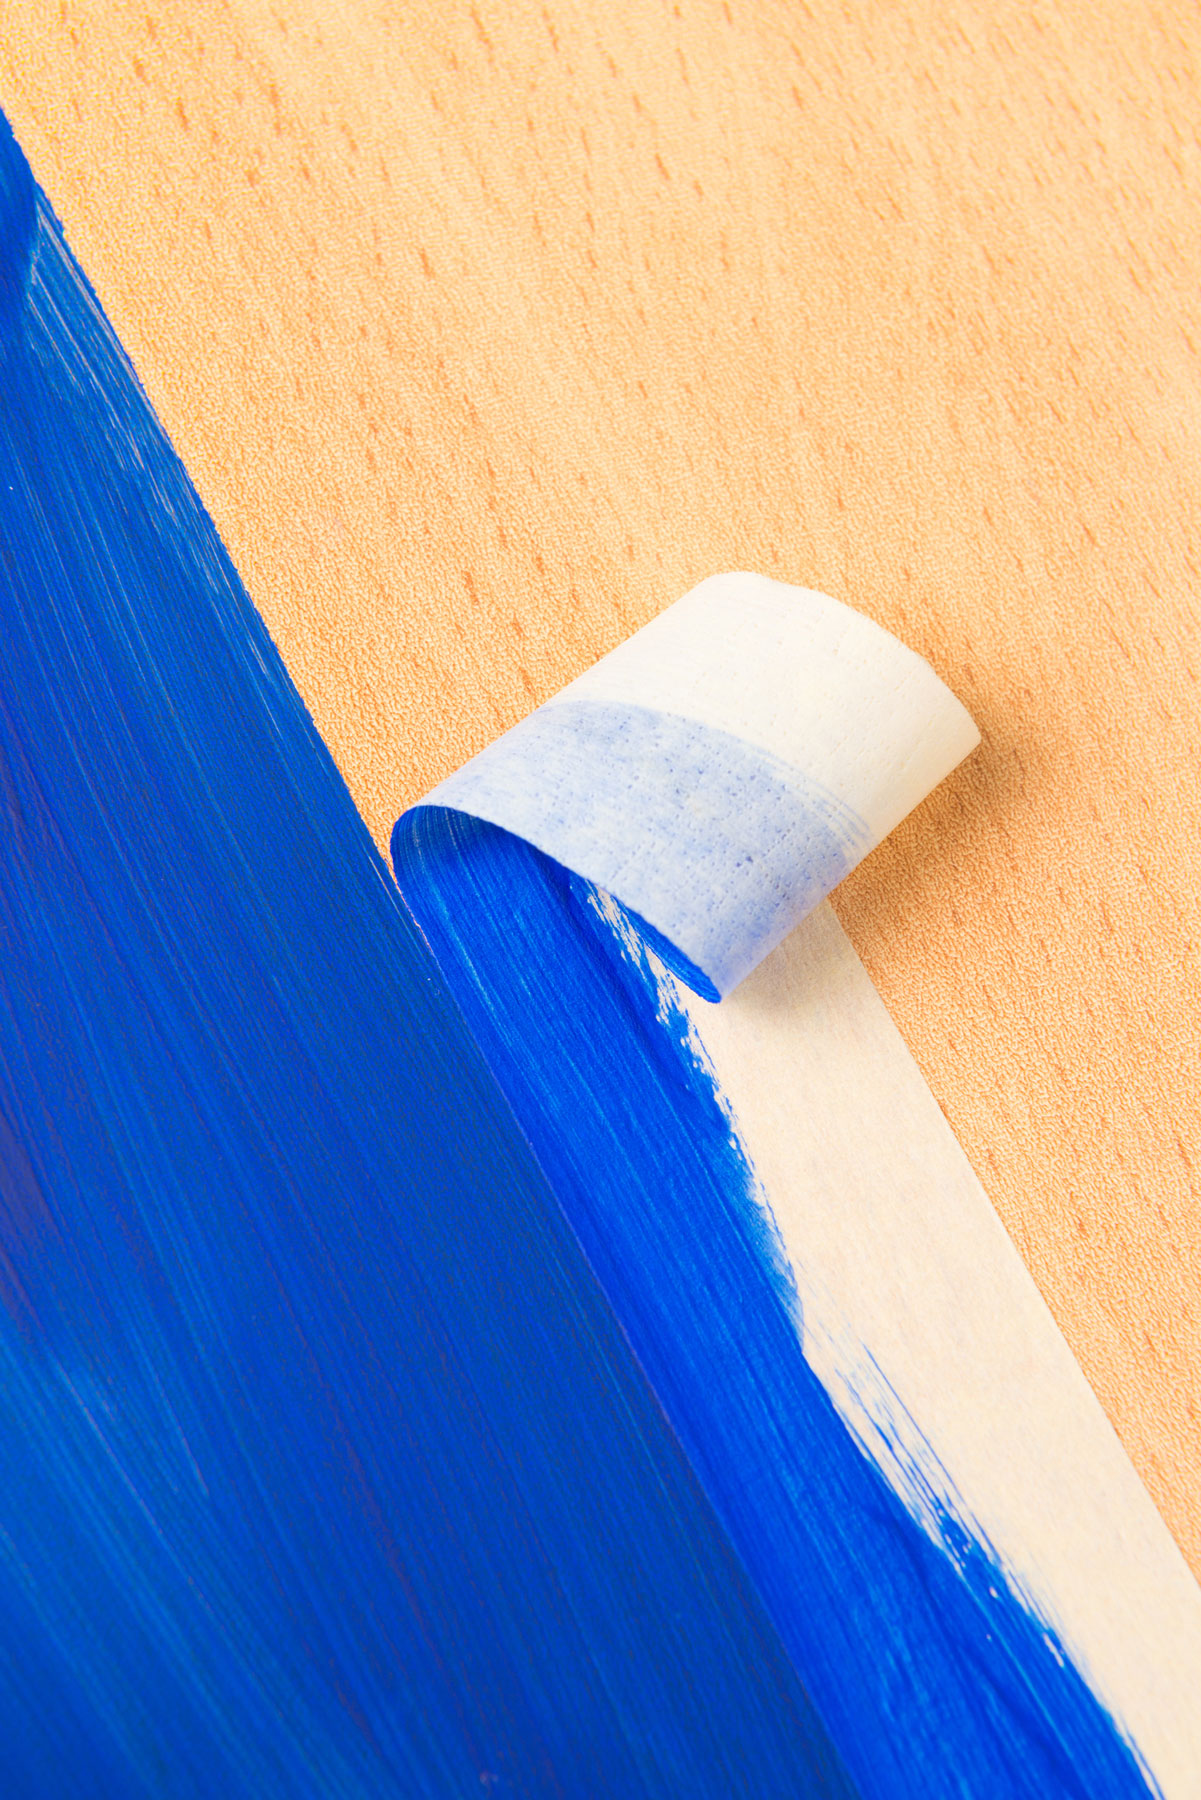 7 Genius Ways to Use Painter's Tape